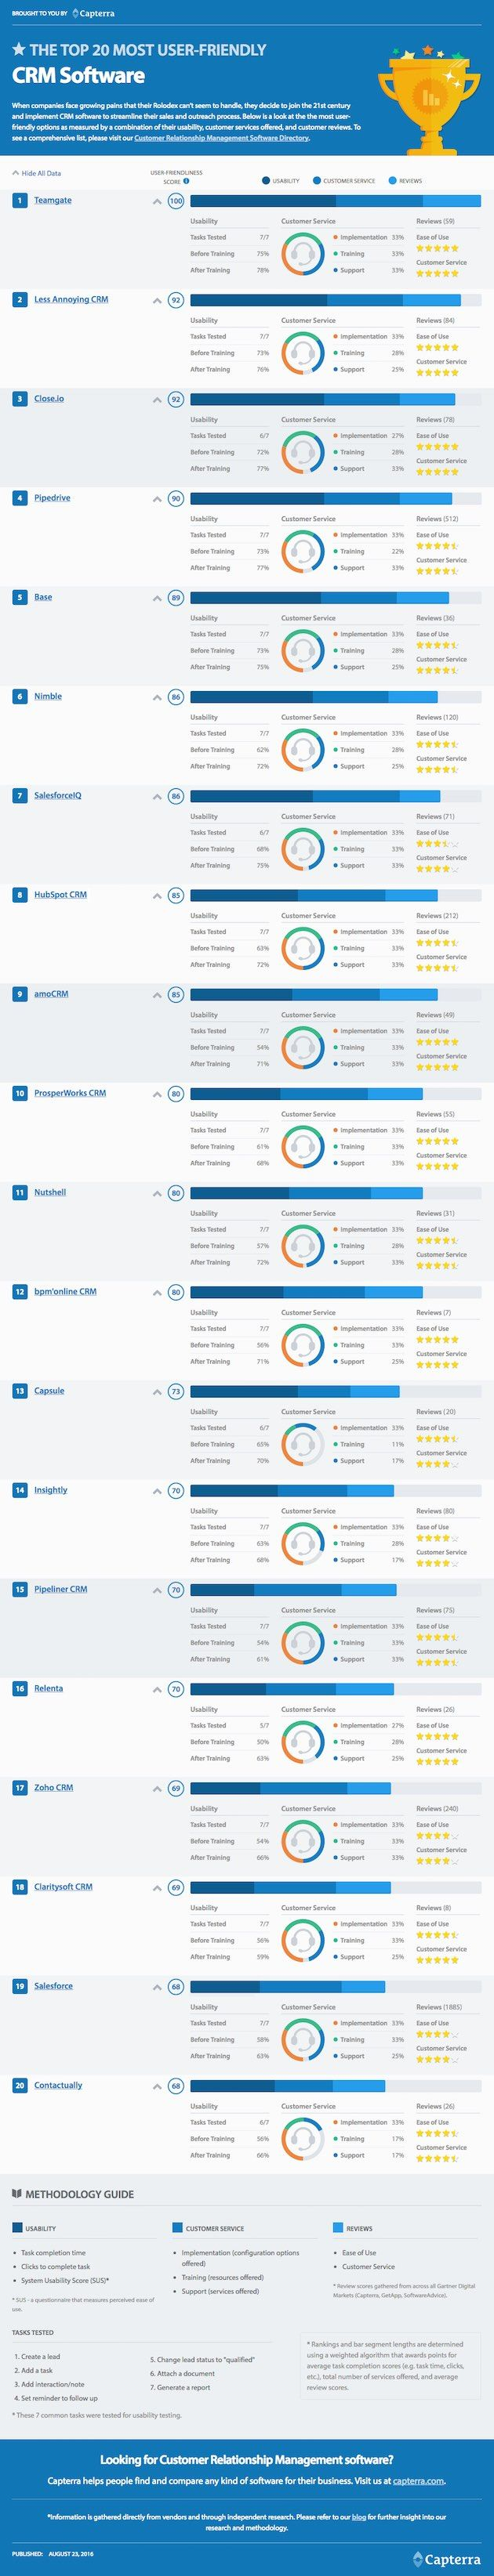 Sales - The 20 Most User-Friendly Sales CRM Tools [Infographic] : MarketingProfs Article